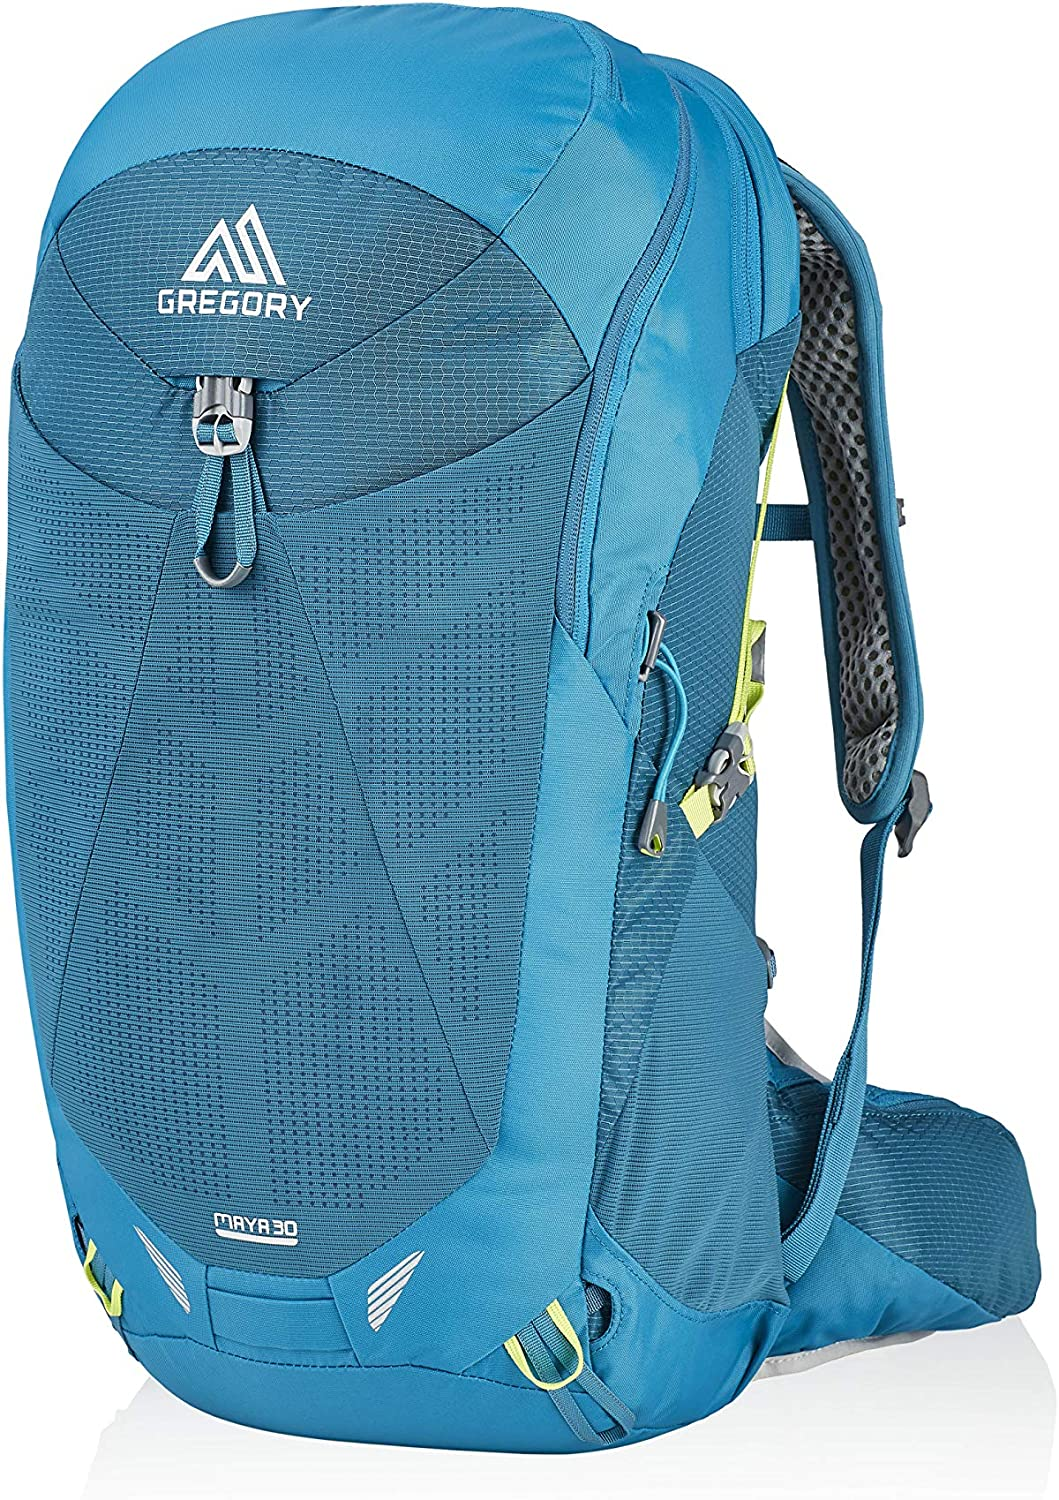 Gregory Mountain Fort Worth Mall Products Maya Super-cheap 30 Hiking Backpack